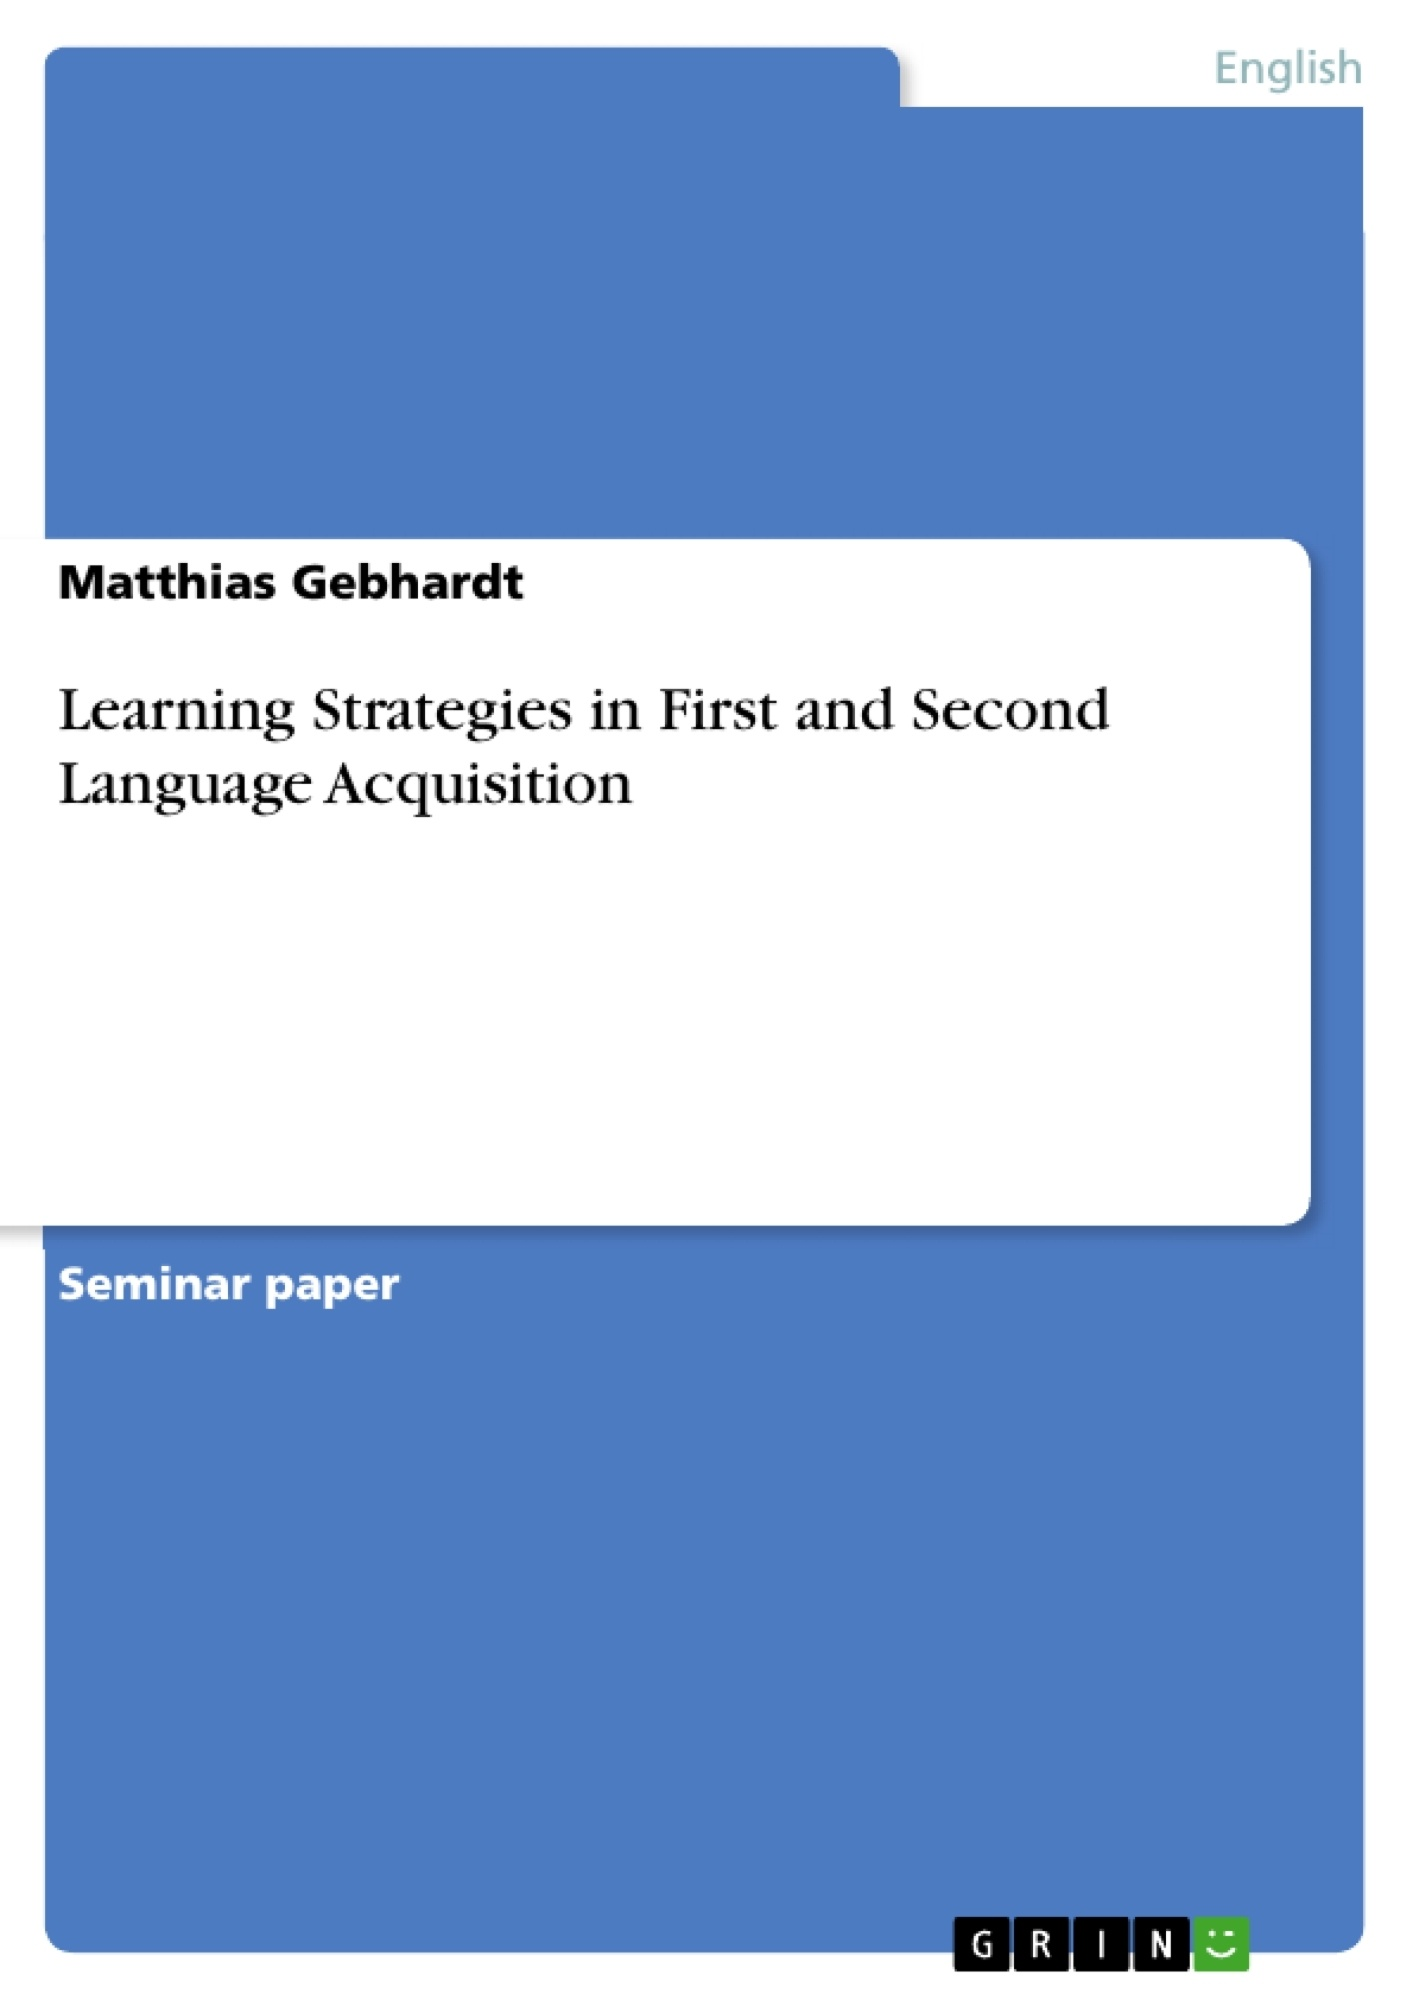 Title: Learning Strategies in First and Second Language Acquisition